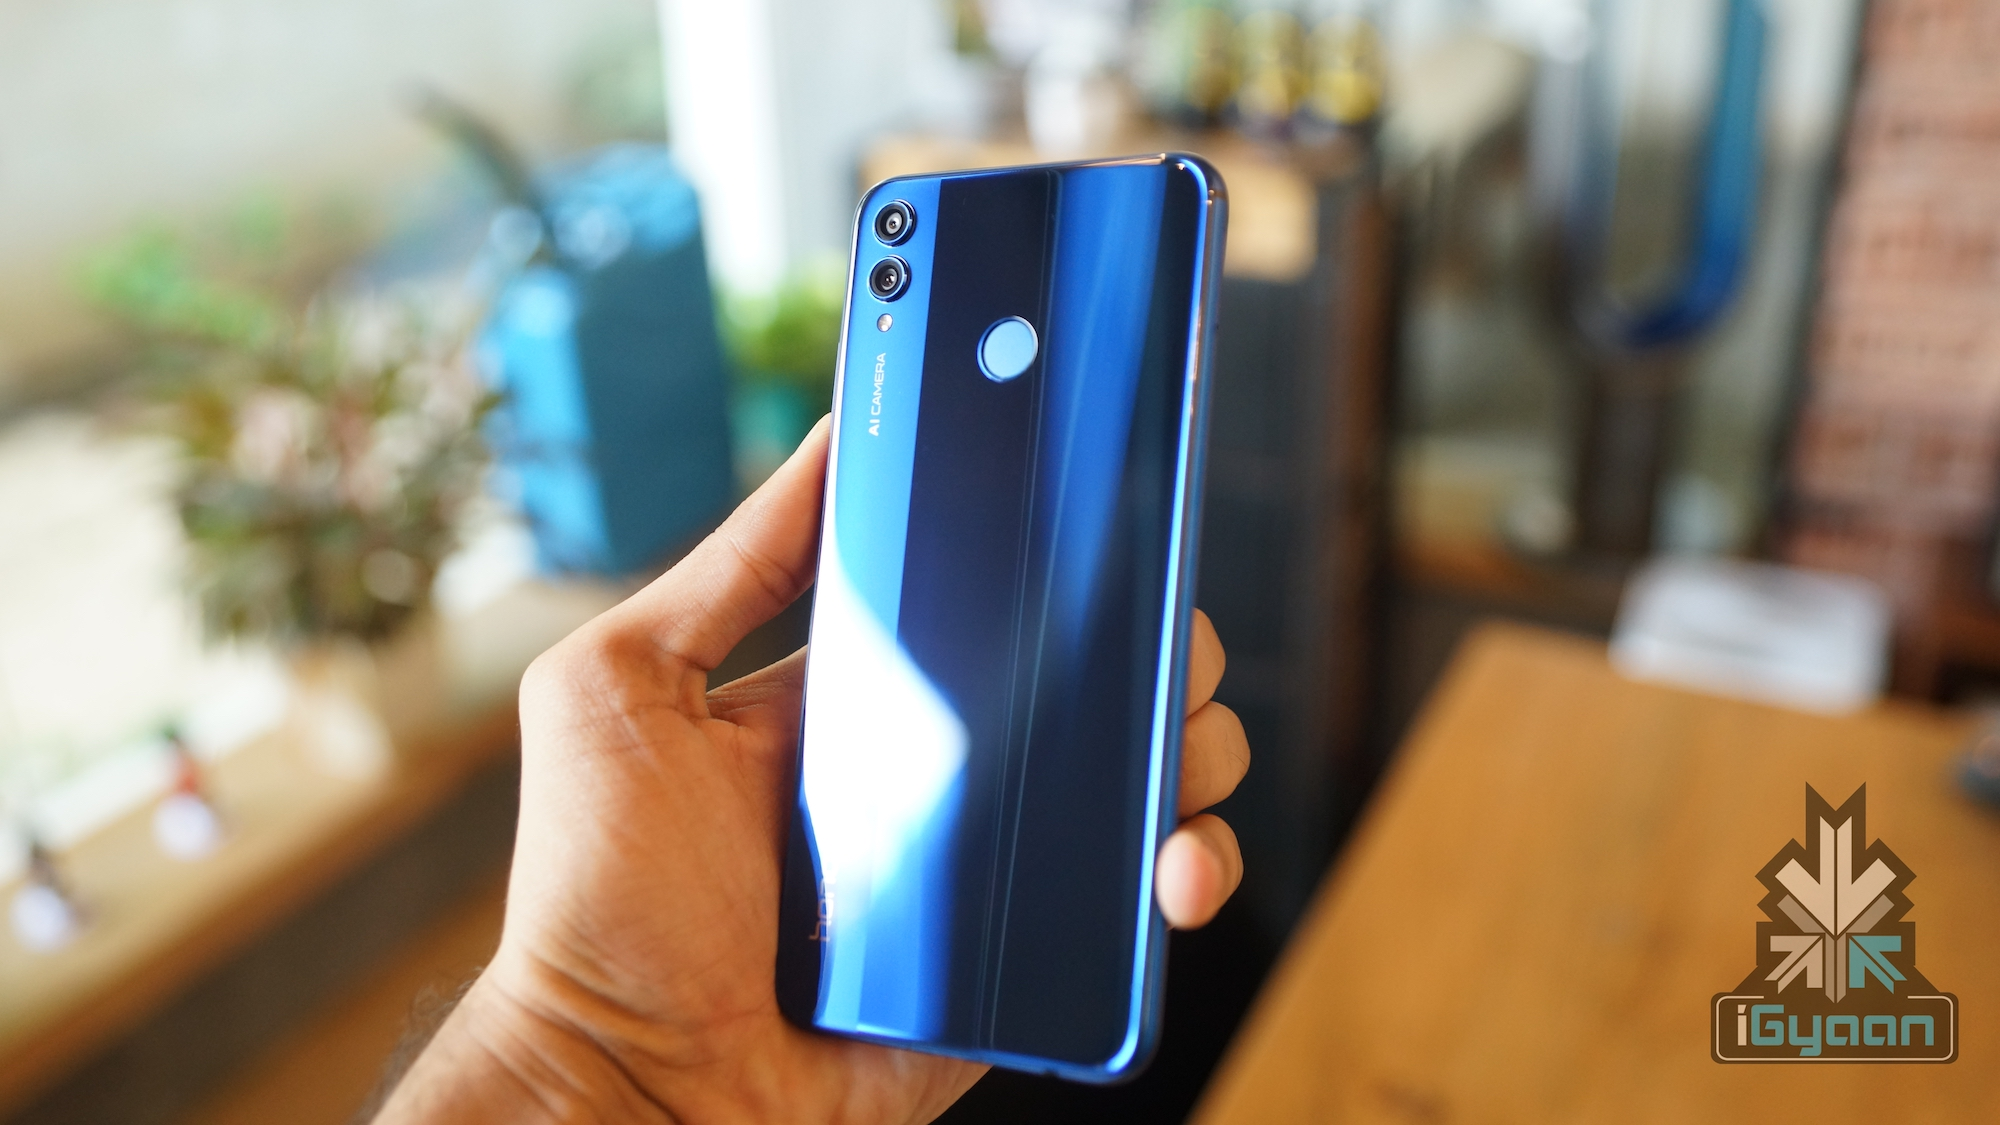 Honor 8X, Realme 2 Pro, Moto One Power Comparison | iGyaan Network